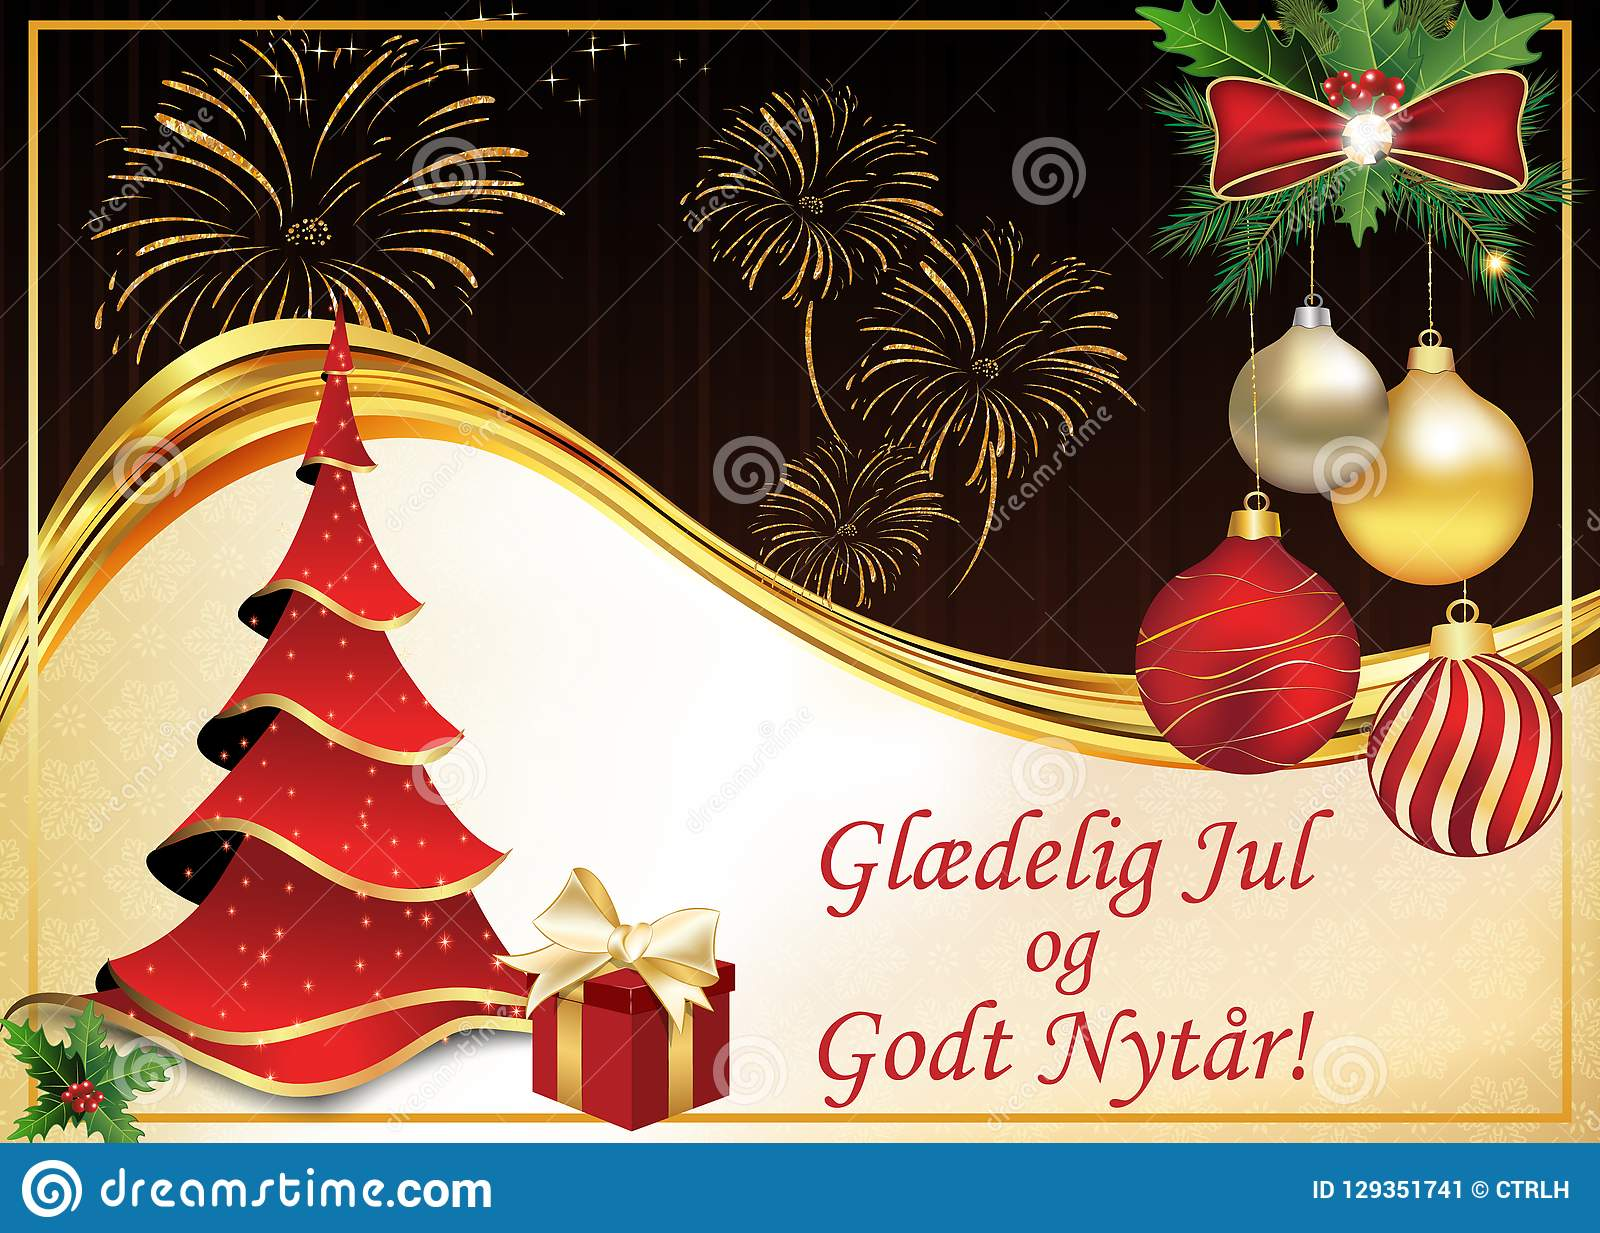 merry christmas and happy new year greeting card in danish